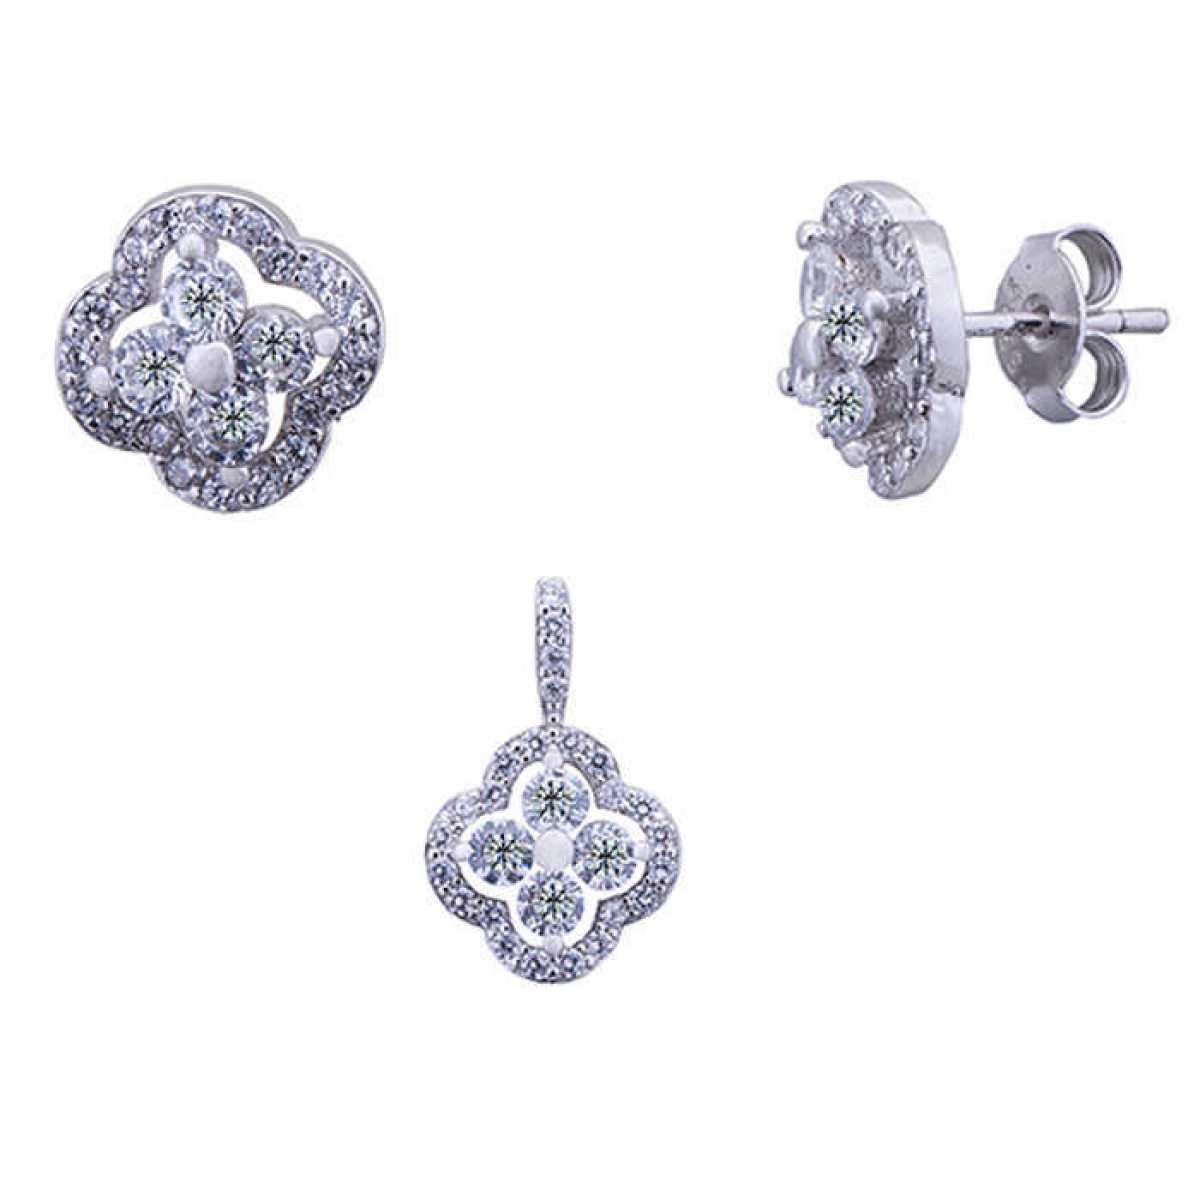 Silver Rose Flower Pendant Set